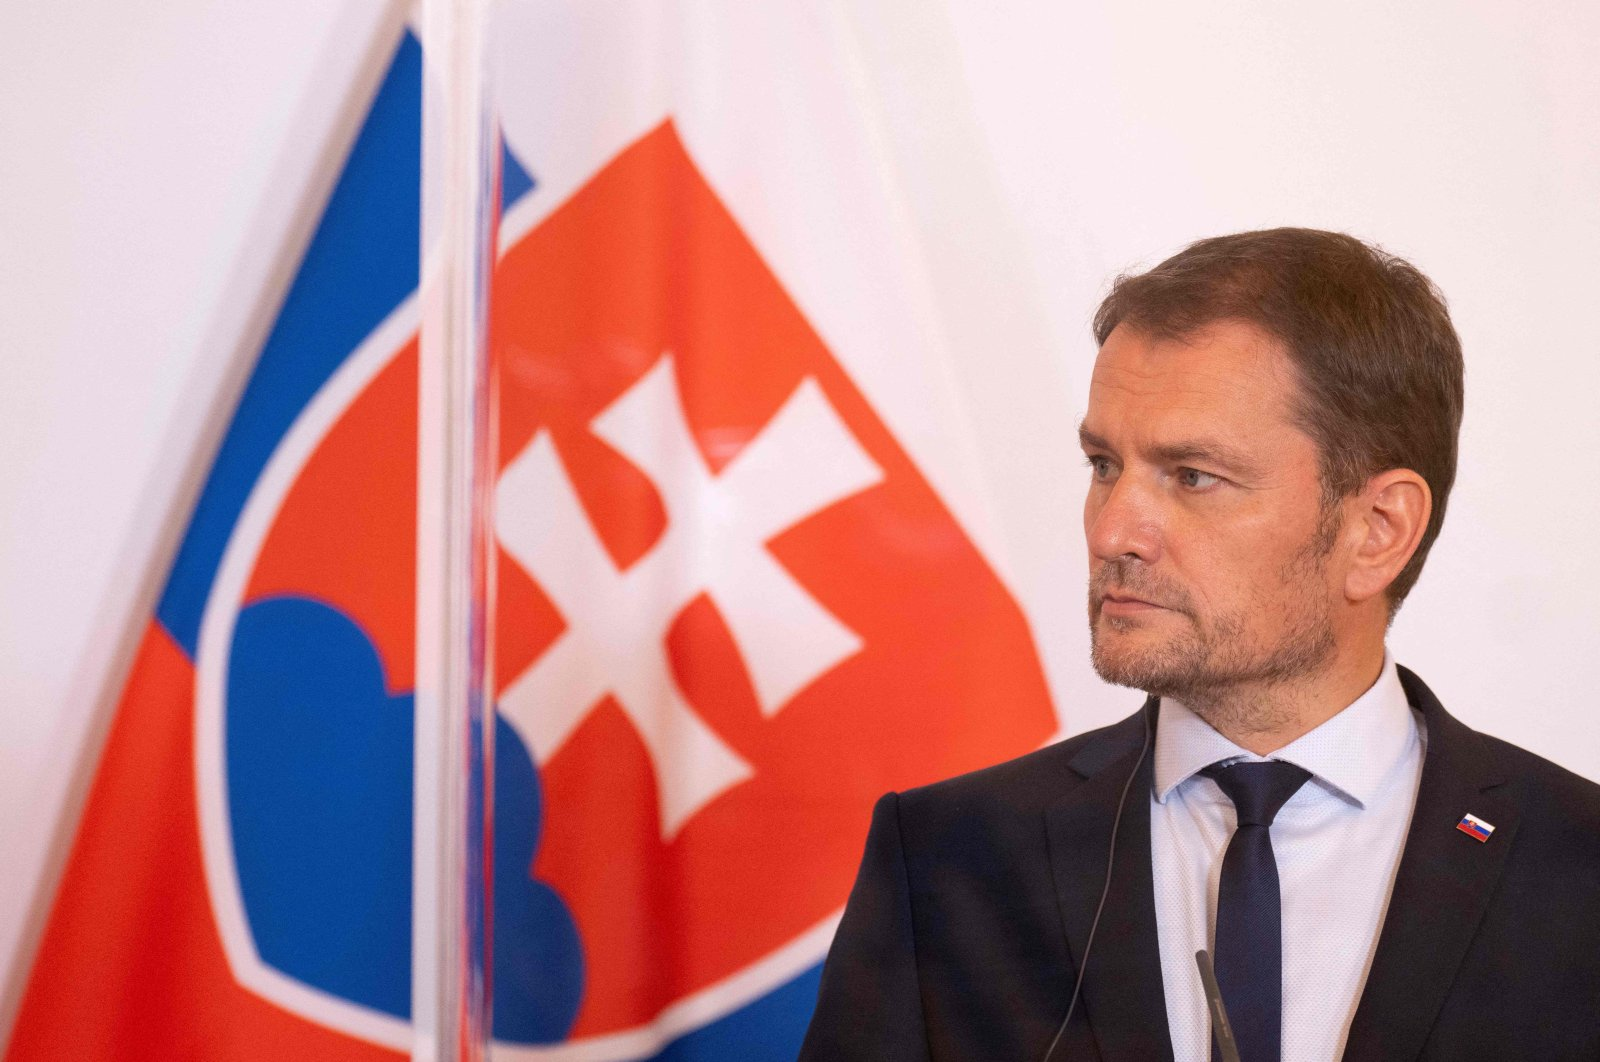 Slovak Prime Minister Igor Matovic attends a press conference with the Czech prime minister and Austrian chancellor during the Slavkov-3 summit at the Austrian Chancellery in Vienna, Austria, Sep. 9, 2020. (AFP)